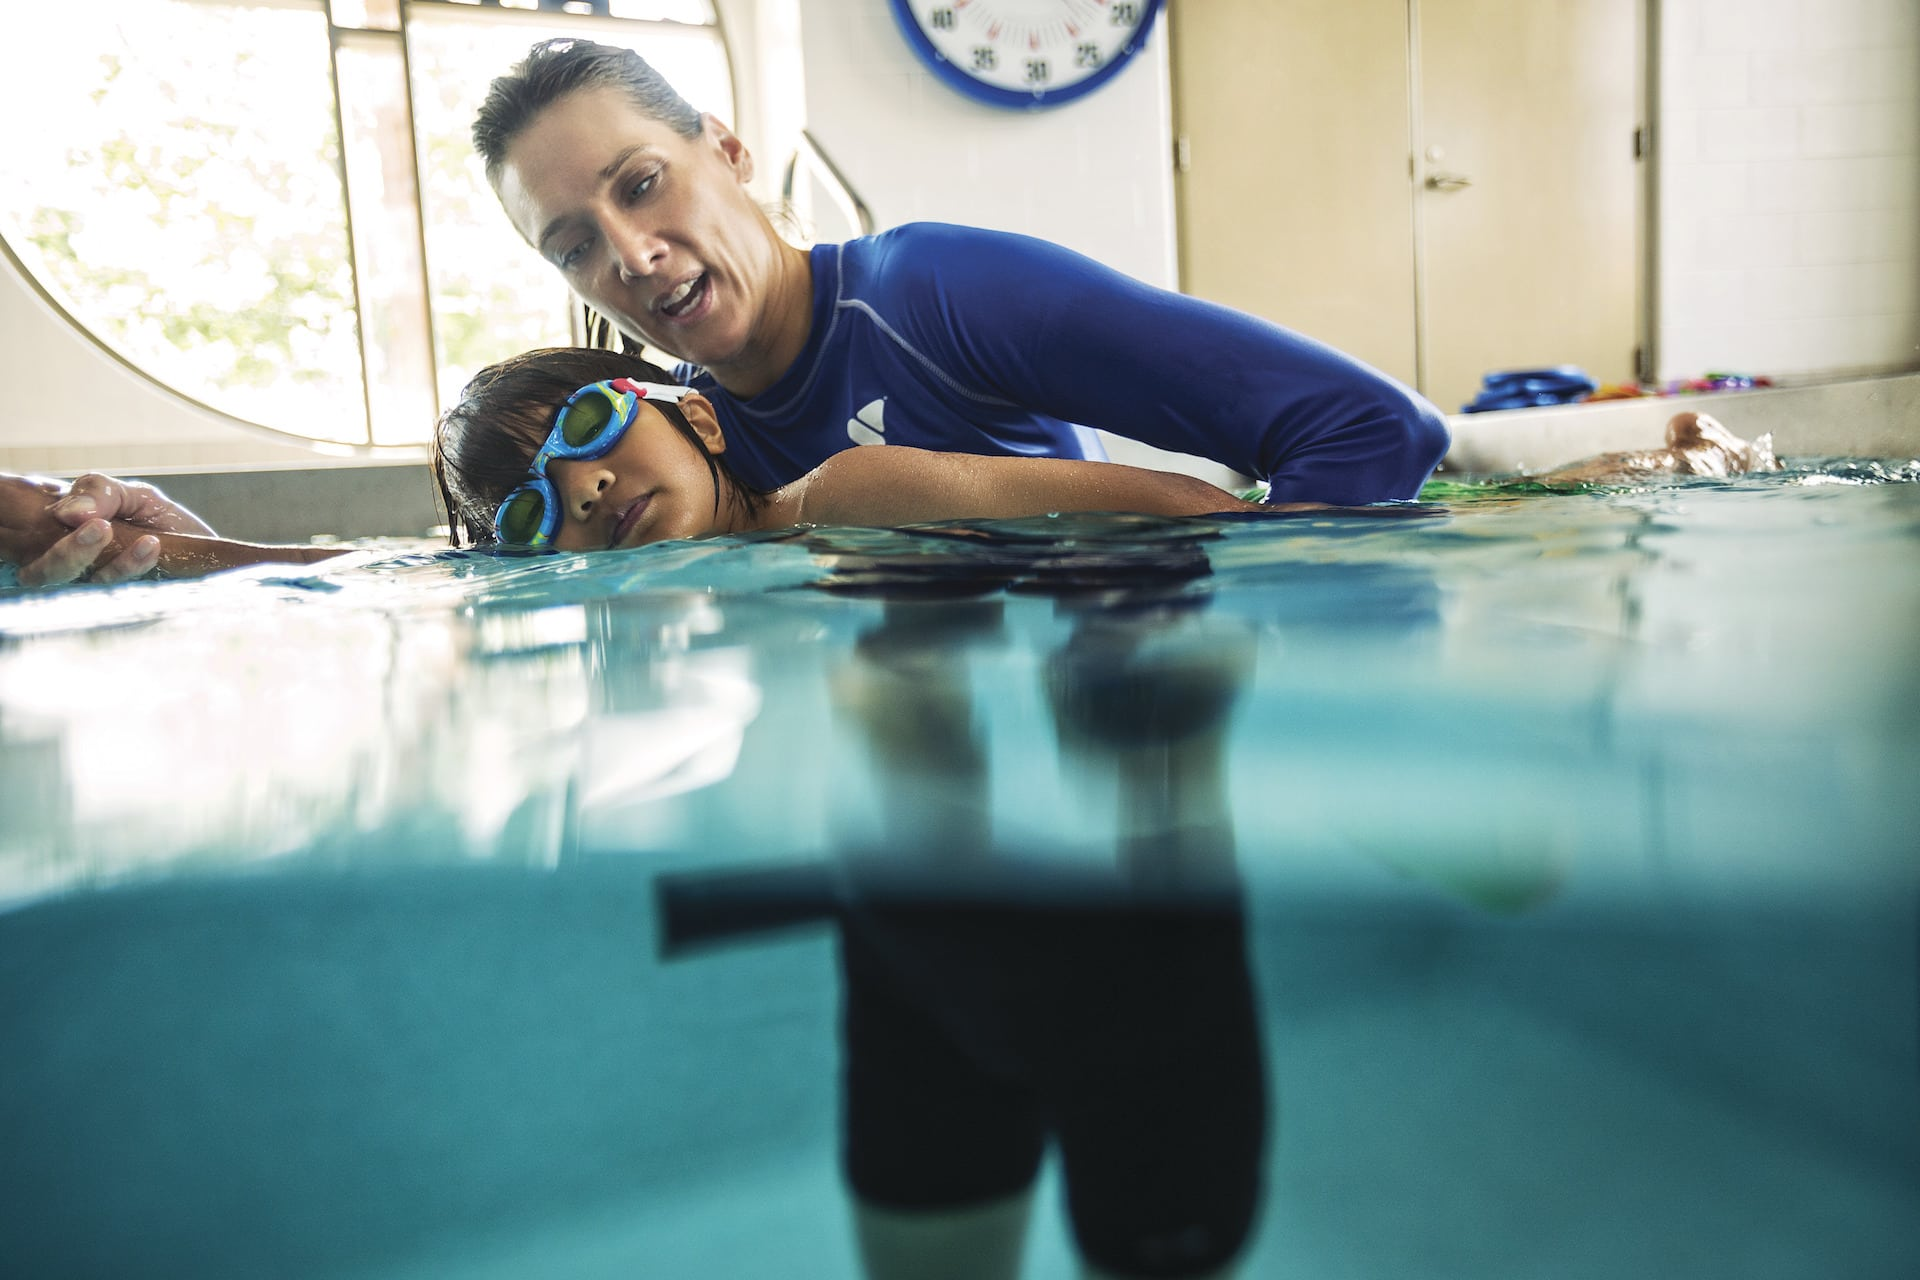 Swimming instructor doing an hands-on stroke exercise with a young swimmer.